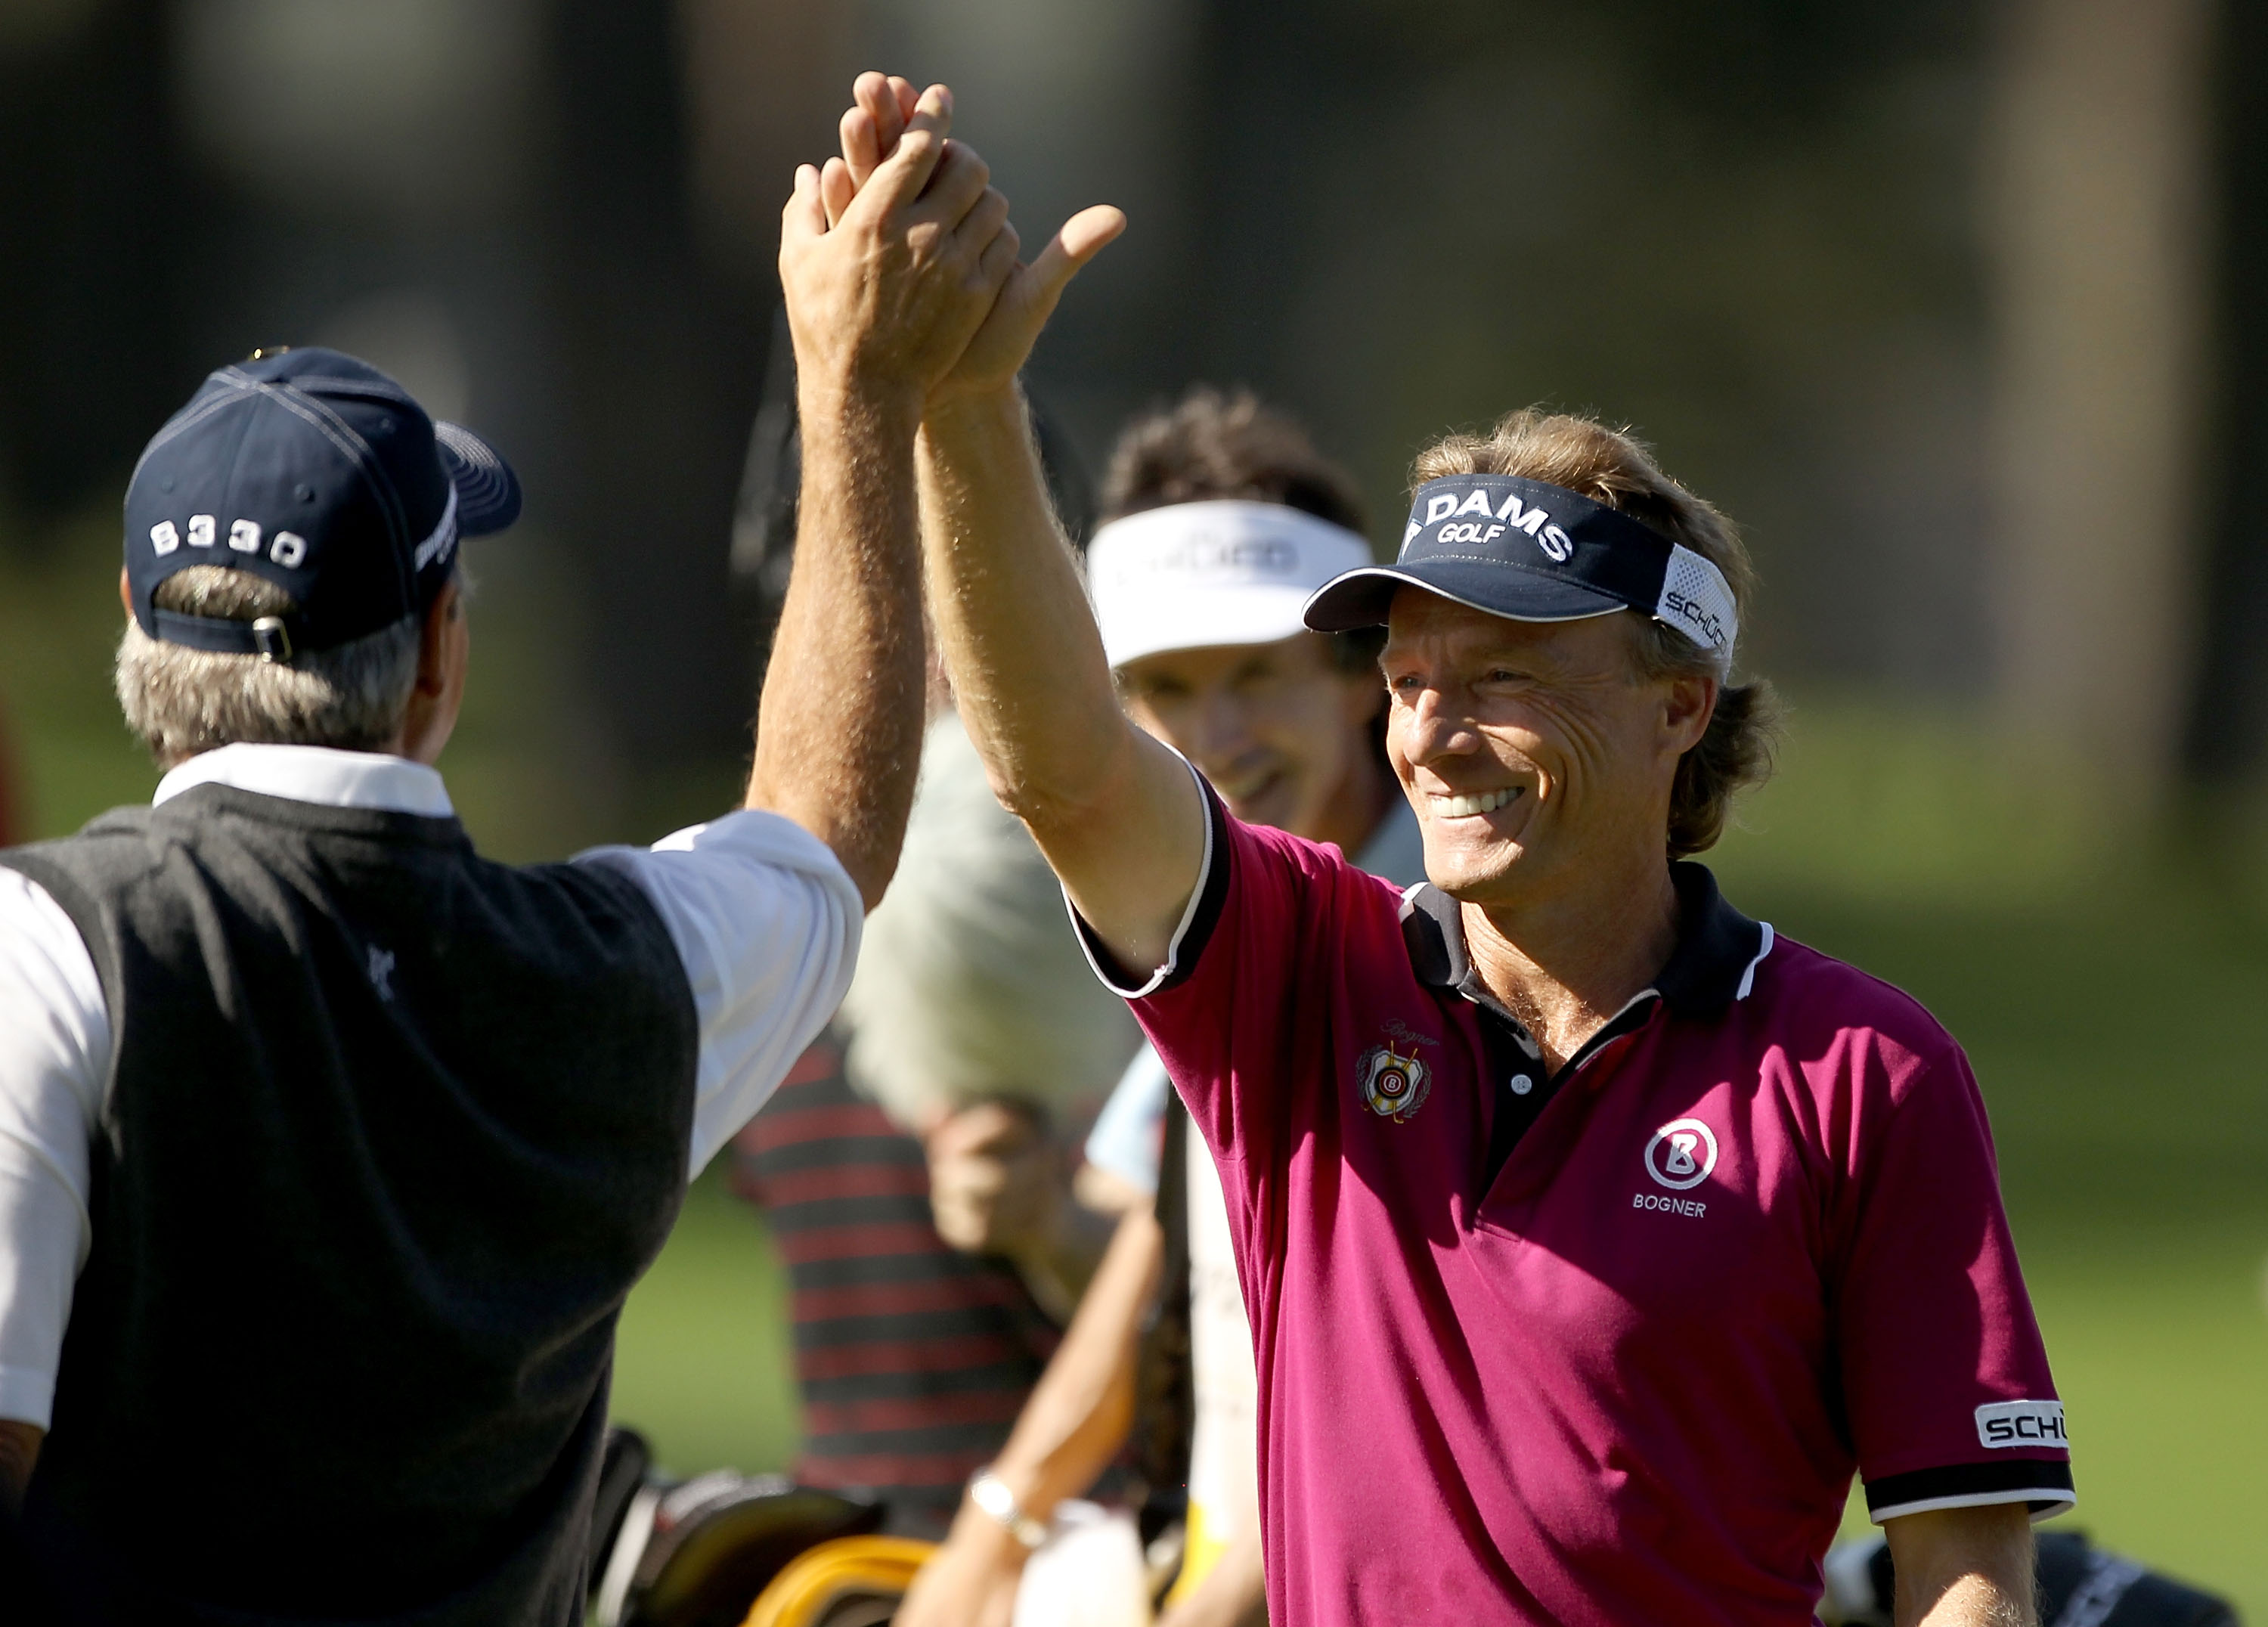 SAN FRANCISCO - NOVEMBER 04:  Bernhard Langer of Germany high fives Fred Couples of the USA after hitting a hole-in-one on the third hole of round 1 of the Charles Schwab Cup Championship at Harding Park Golf Course on November 4, 2010 in San Francisco, C